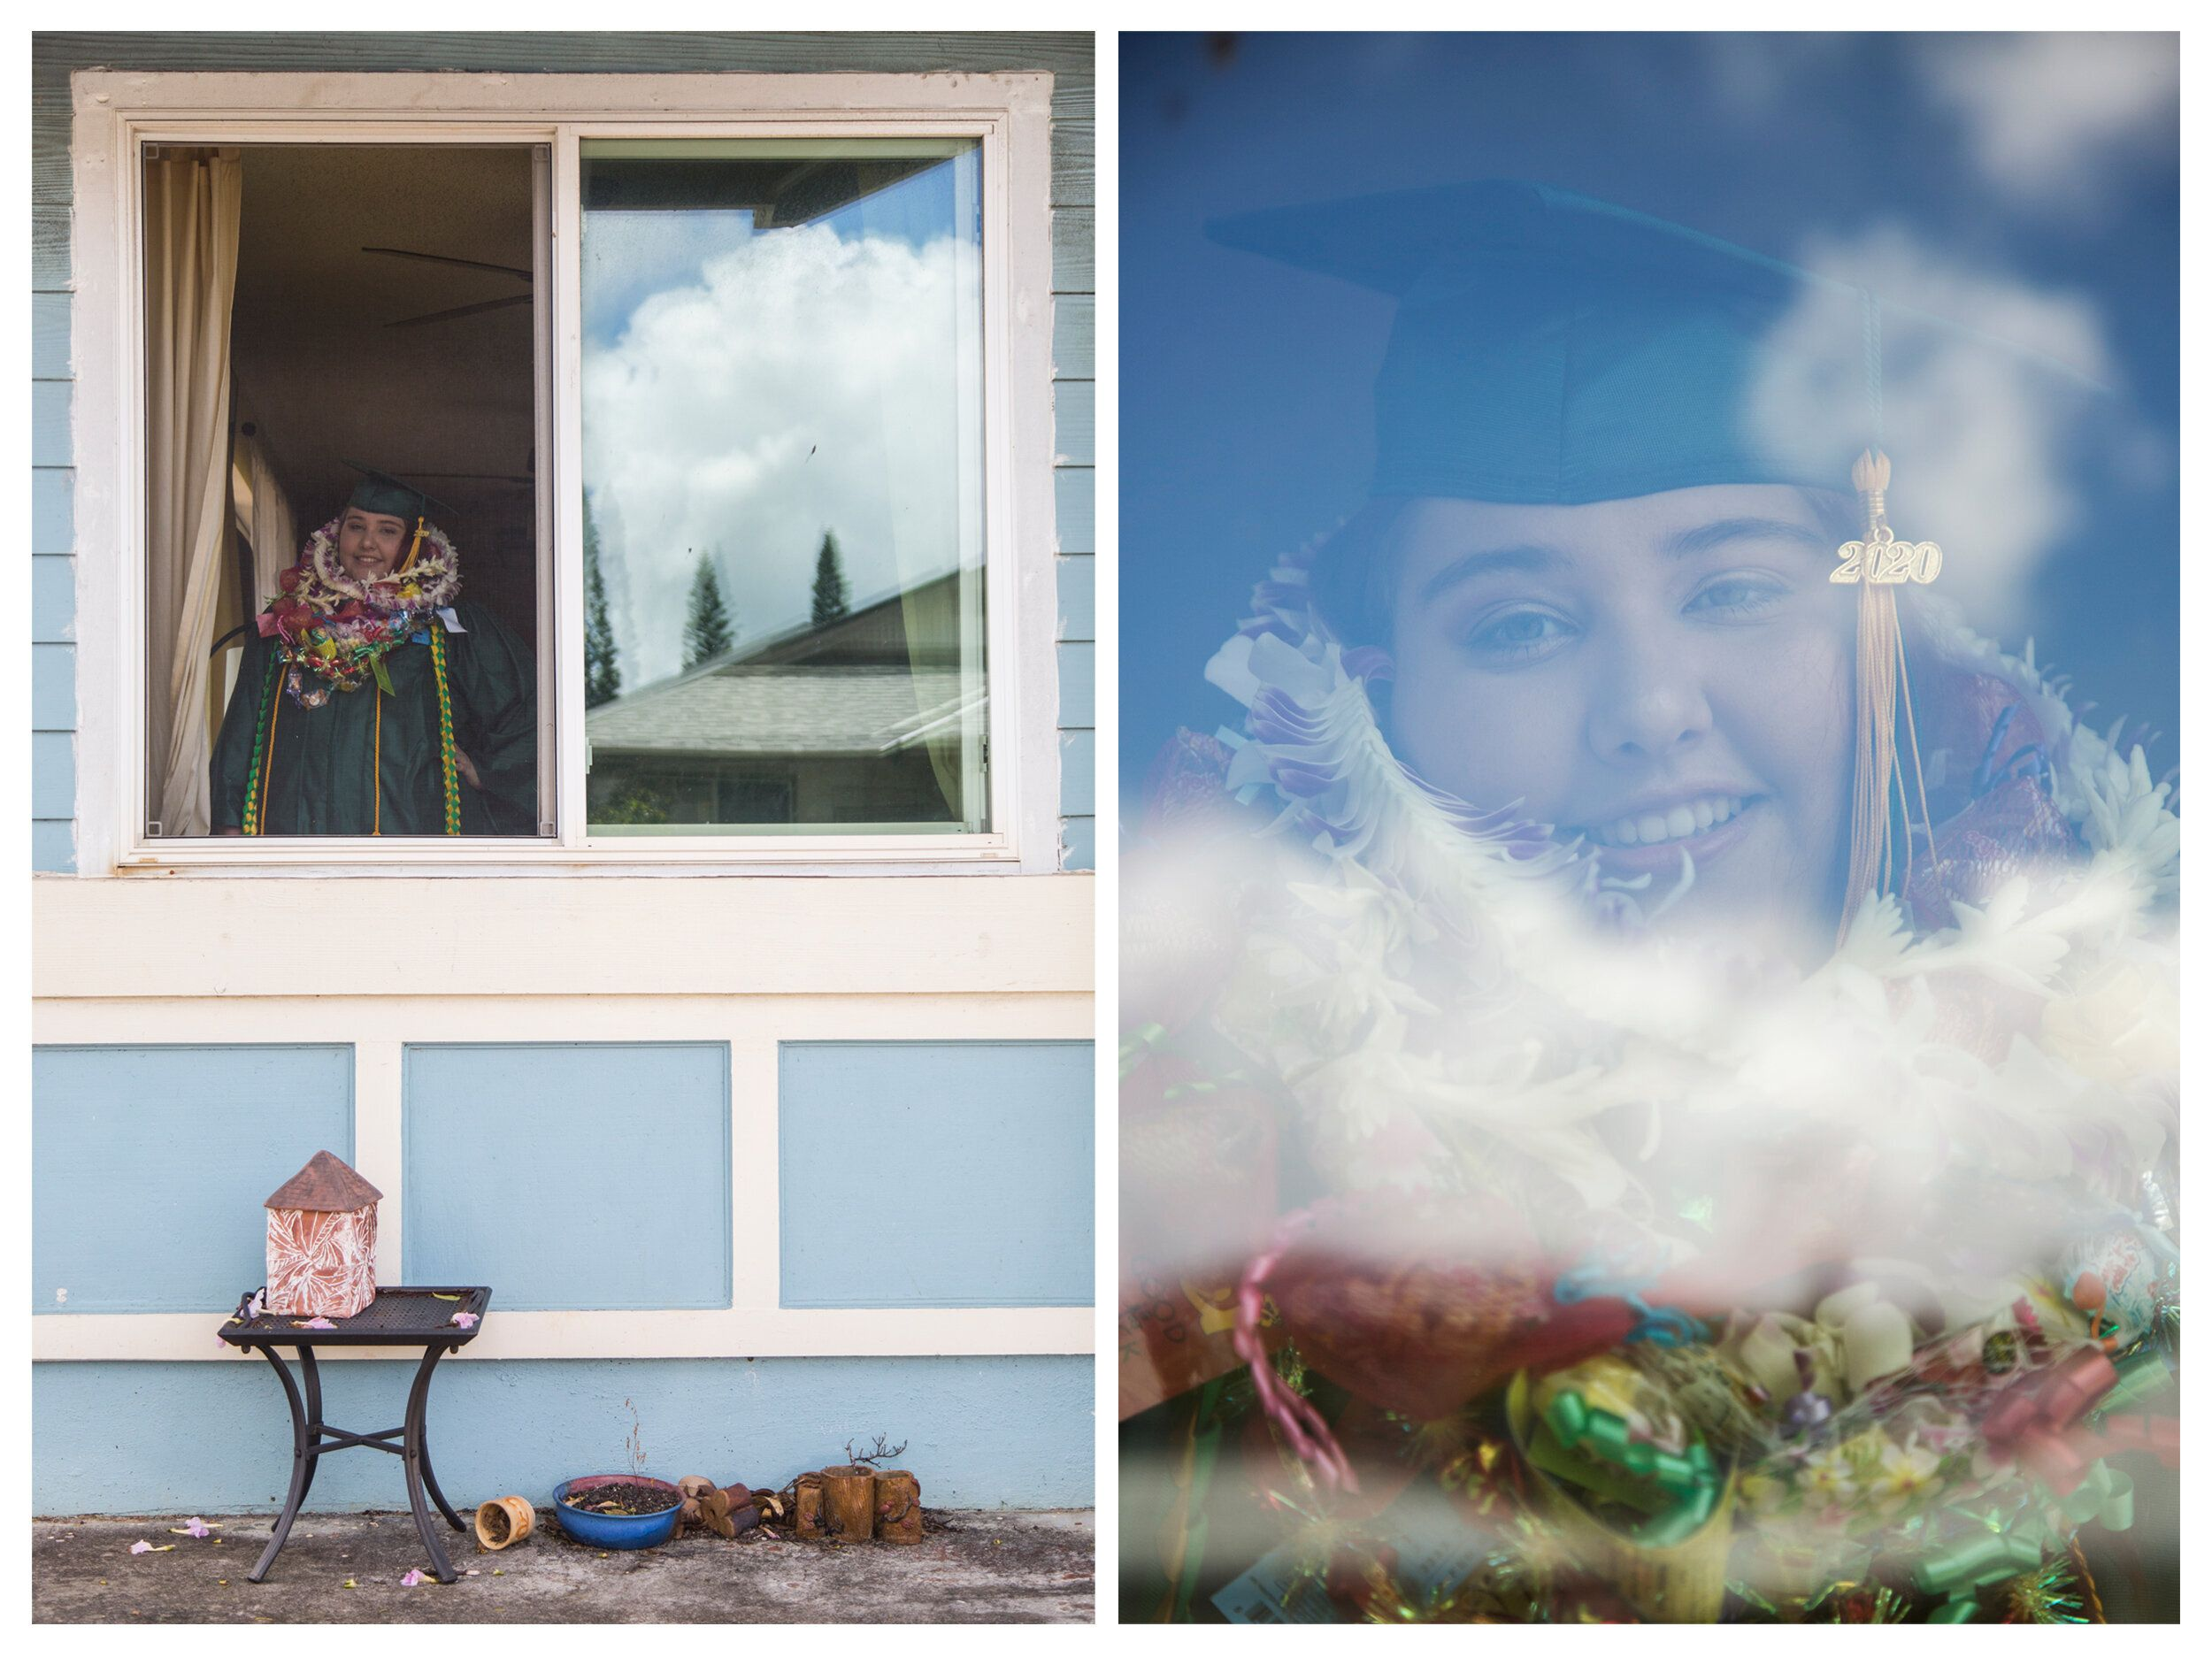 Asha Silva, a Leilehua High School graduate, shows off her colorful leis at her home in Mililani, Hawaii, on May 23.